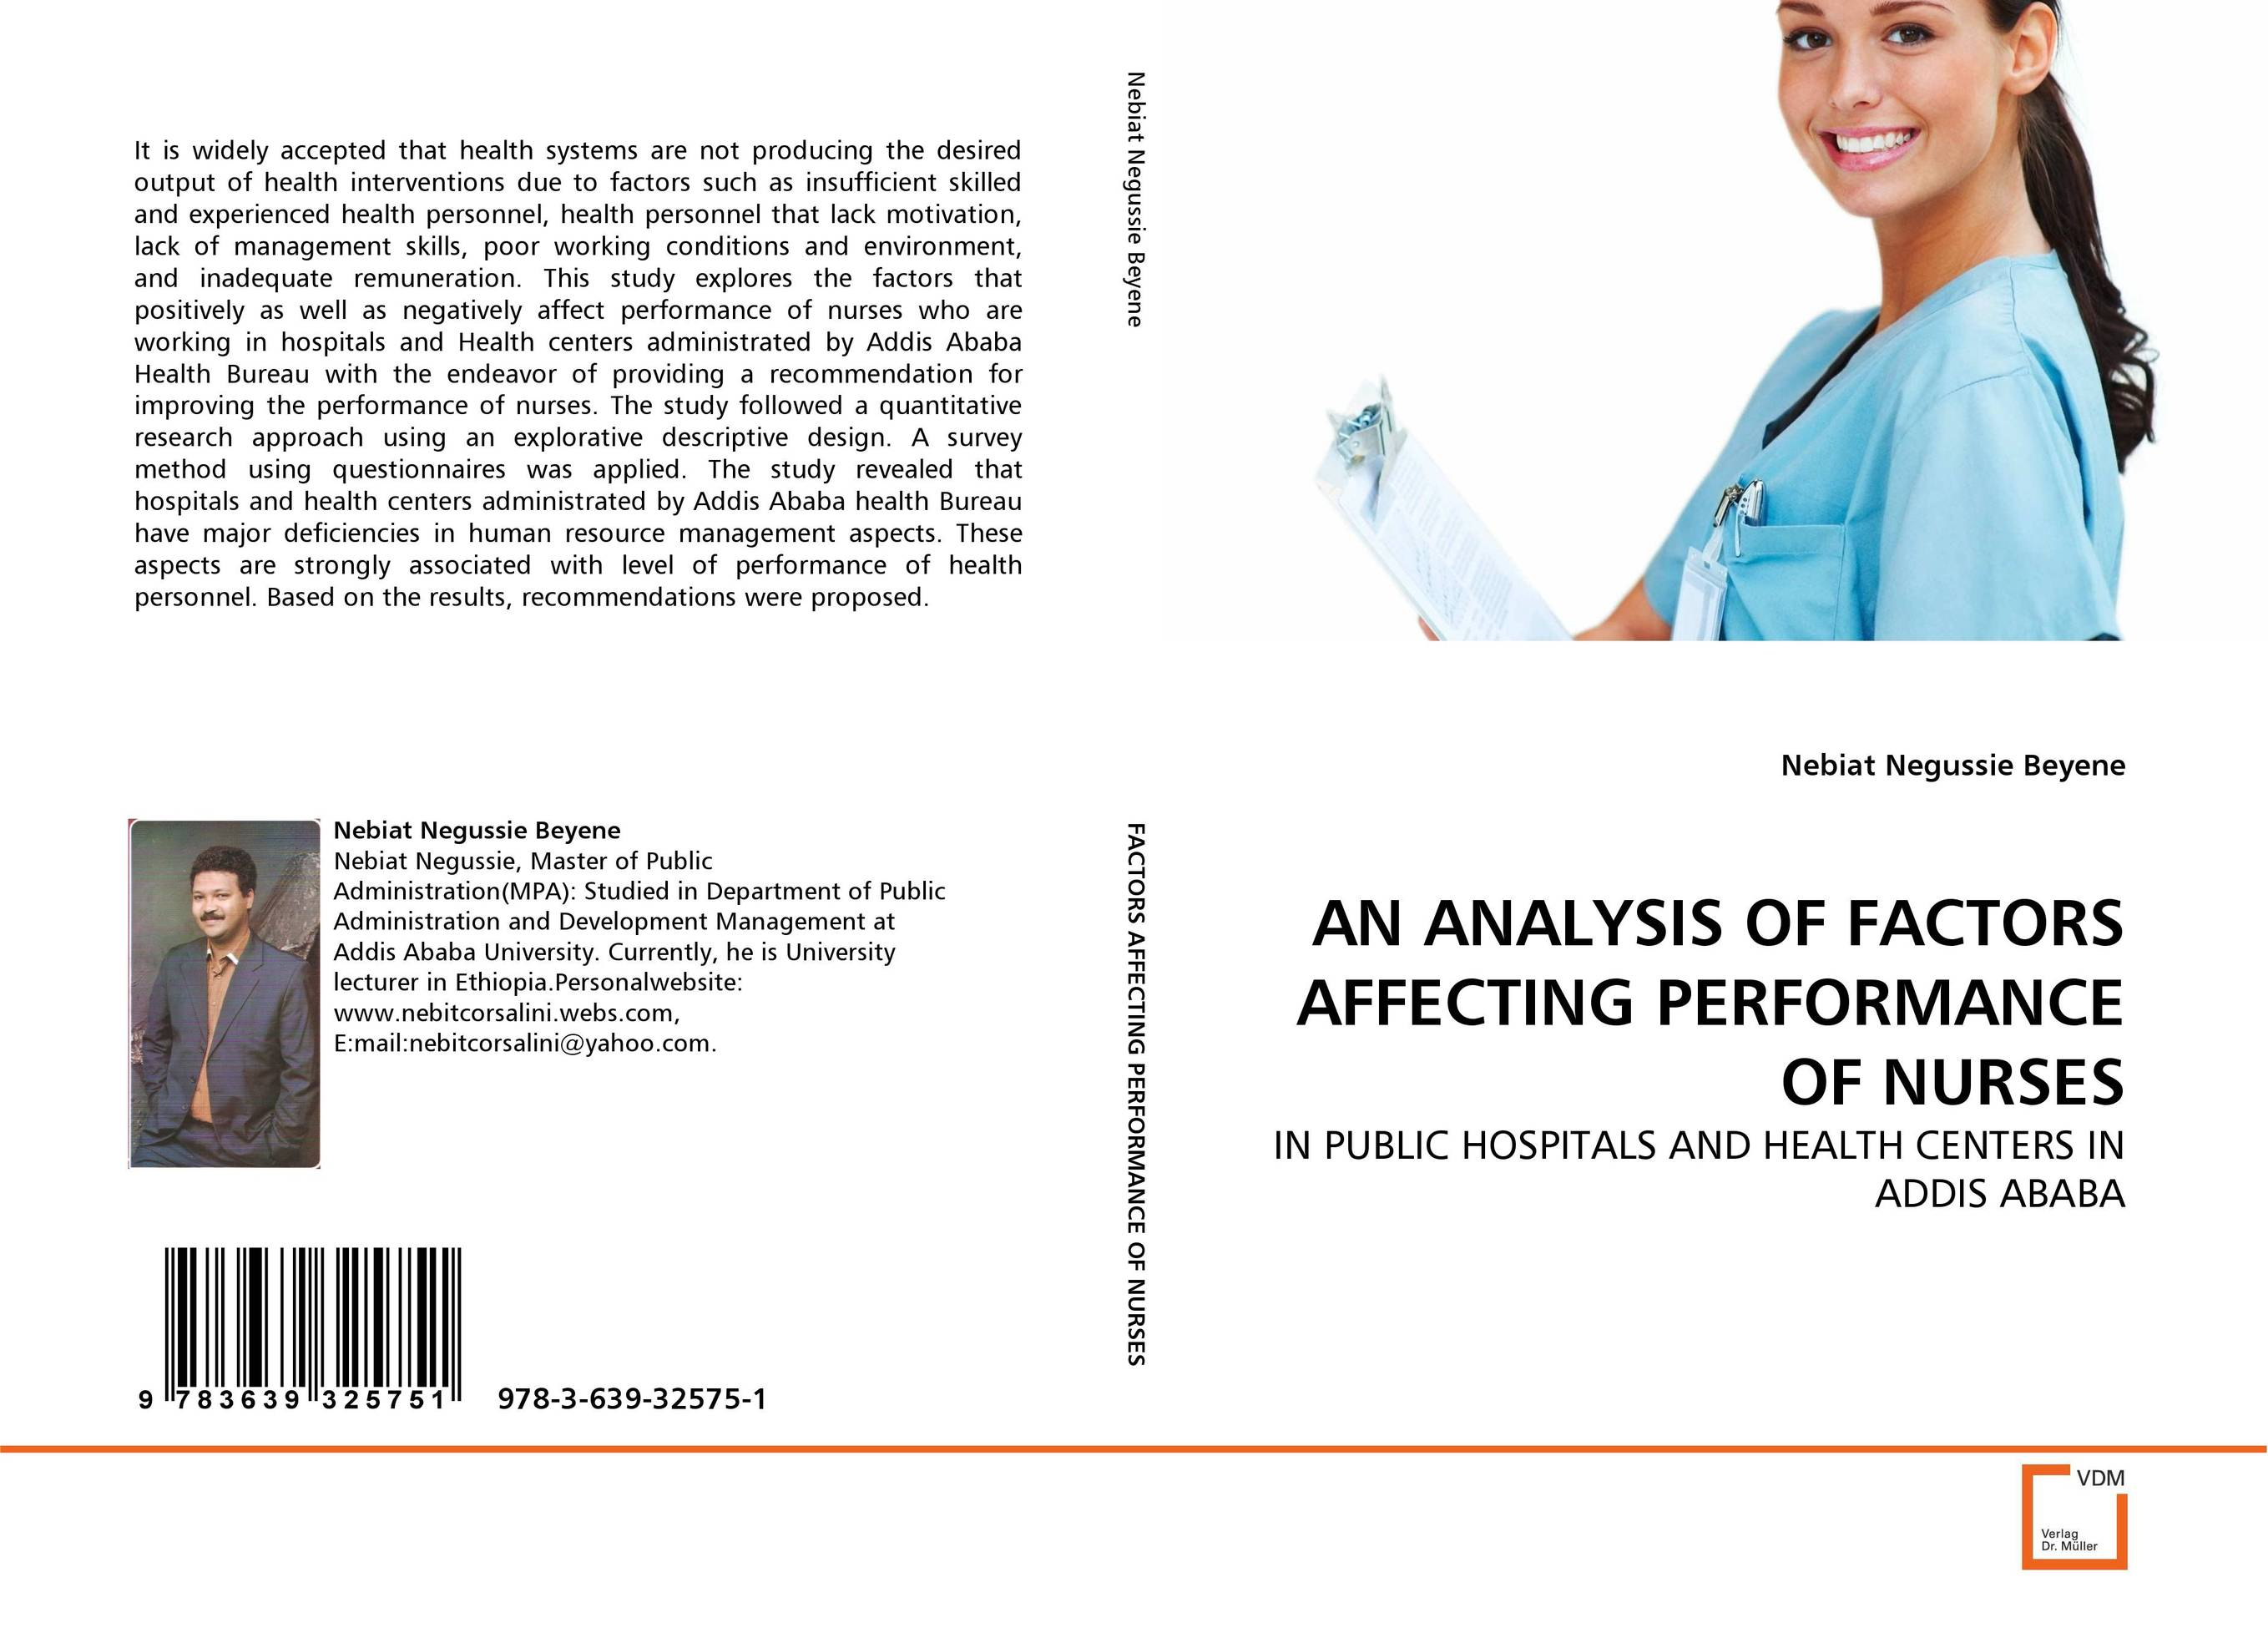 AN ANALYSIS OF FACTORS AFFECTING PERFORMANCE OF NURSES bb spf20